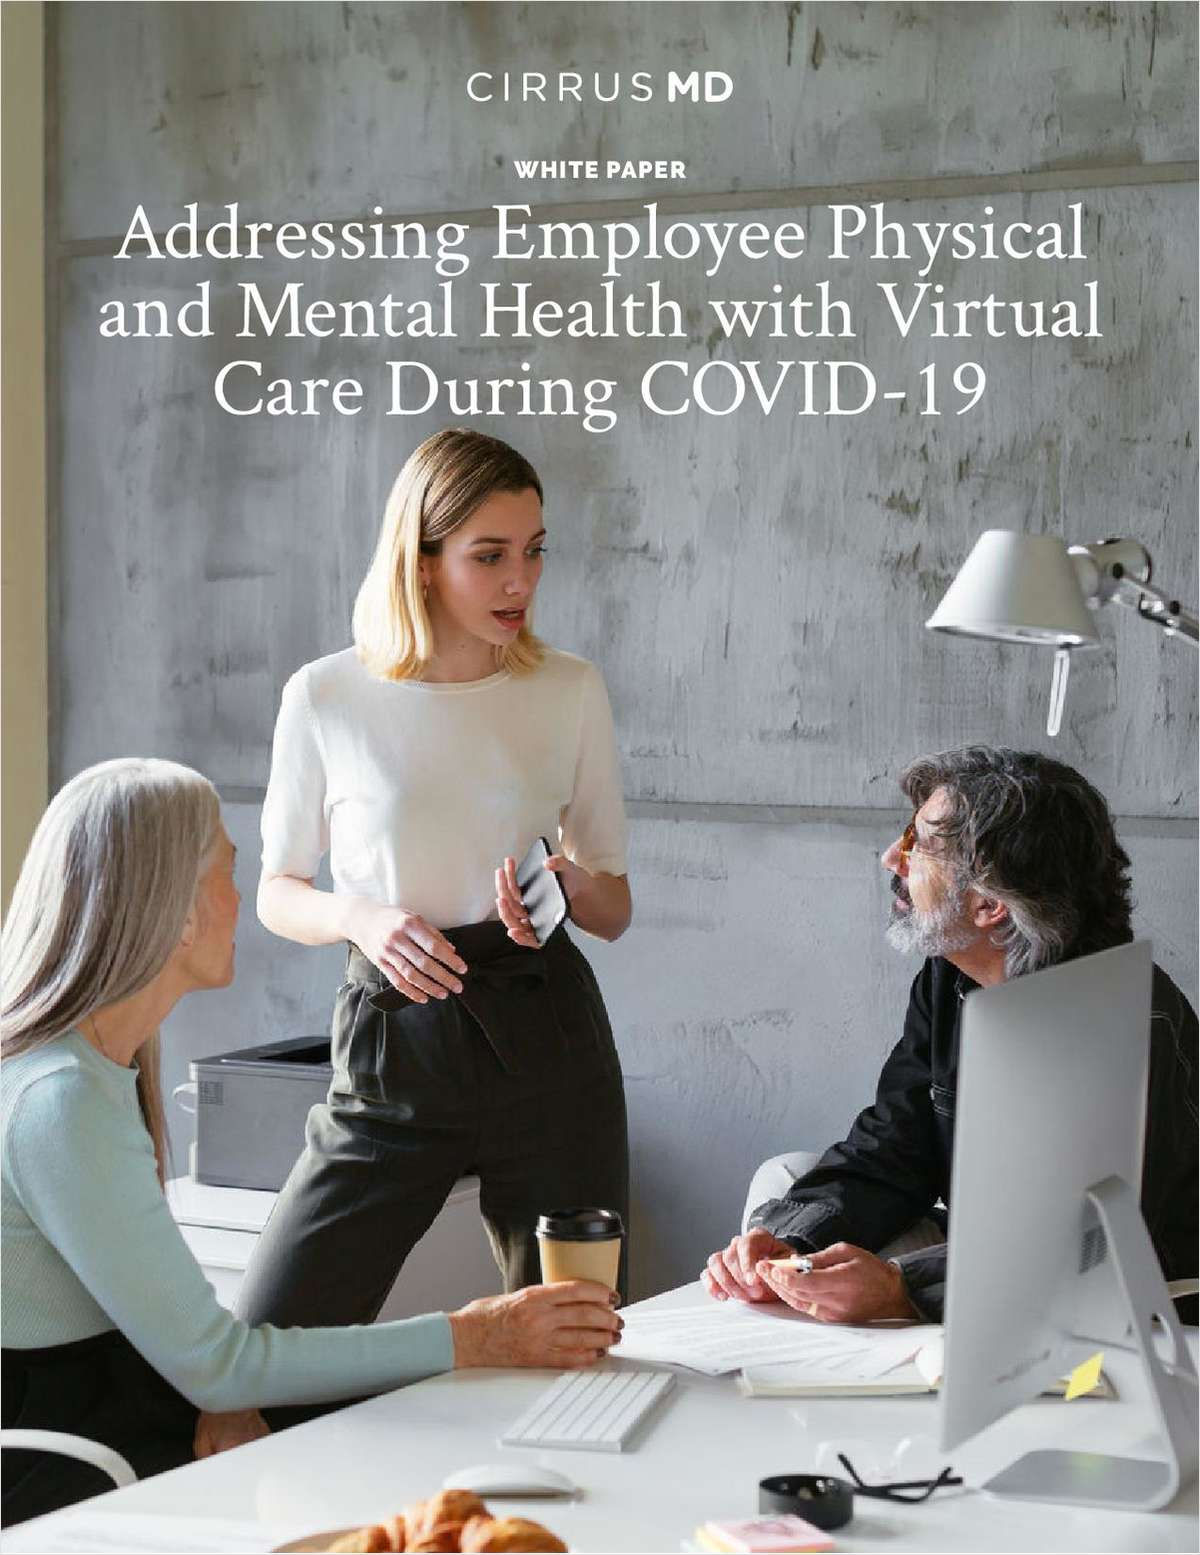 Addressing Employee Physical and Mental Health with Virtual Care During COVID-19